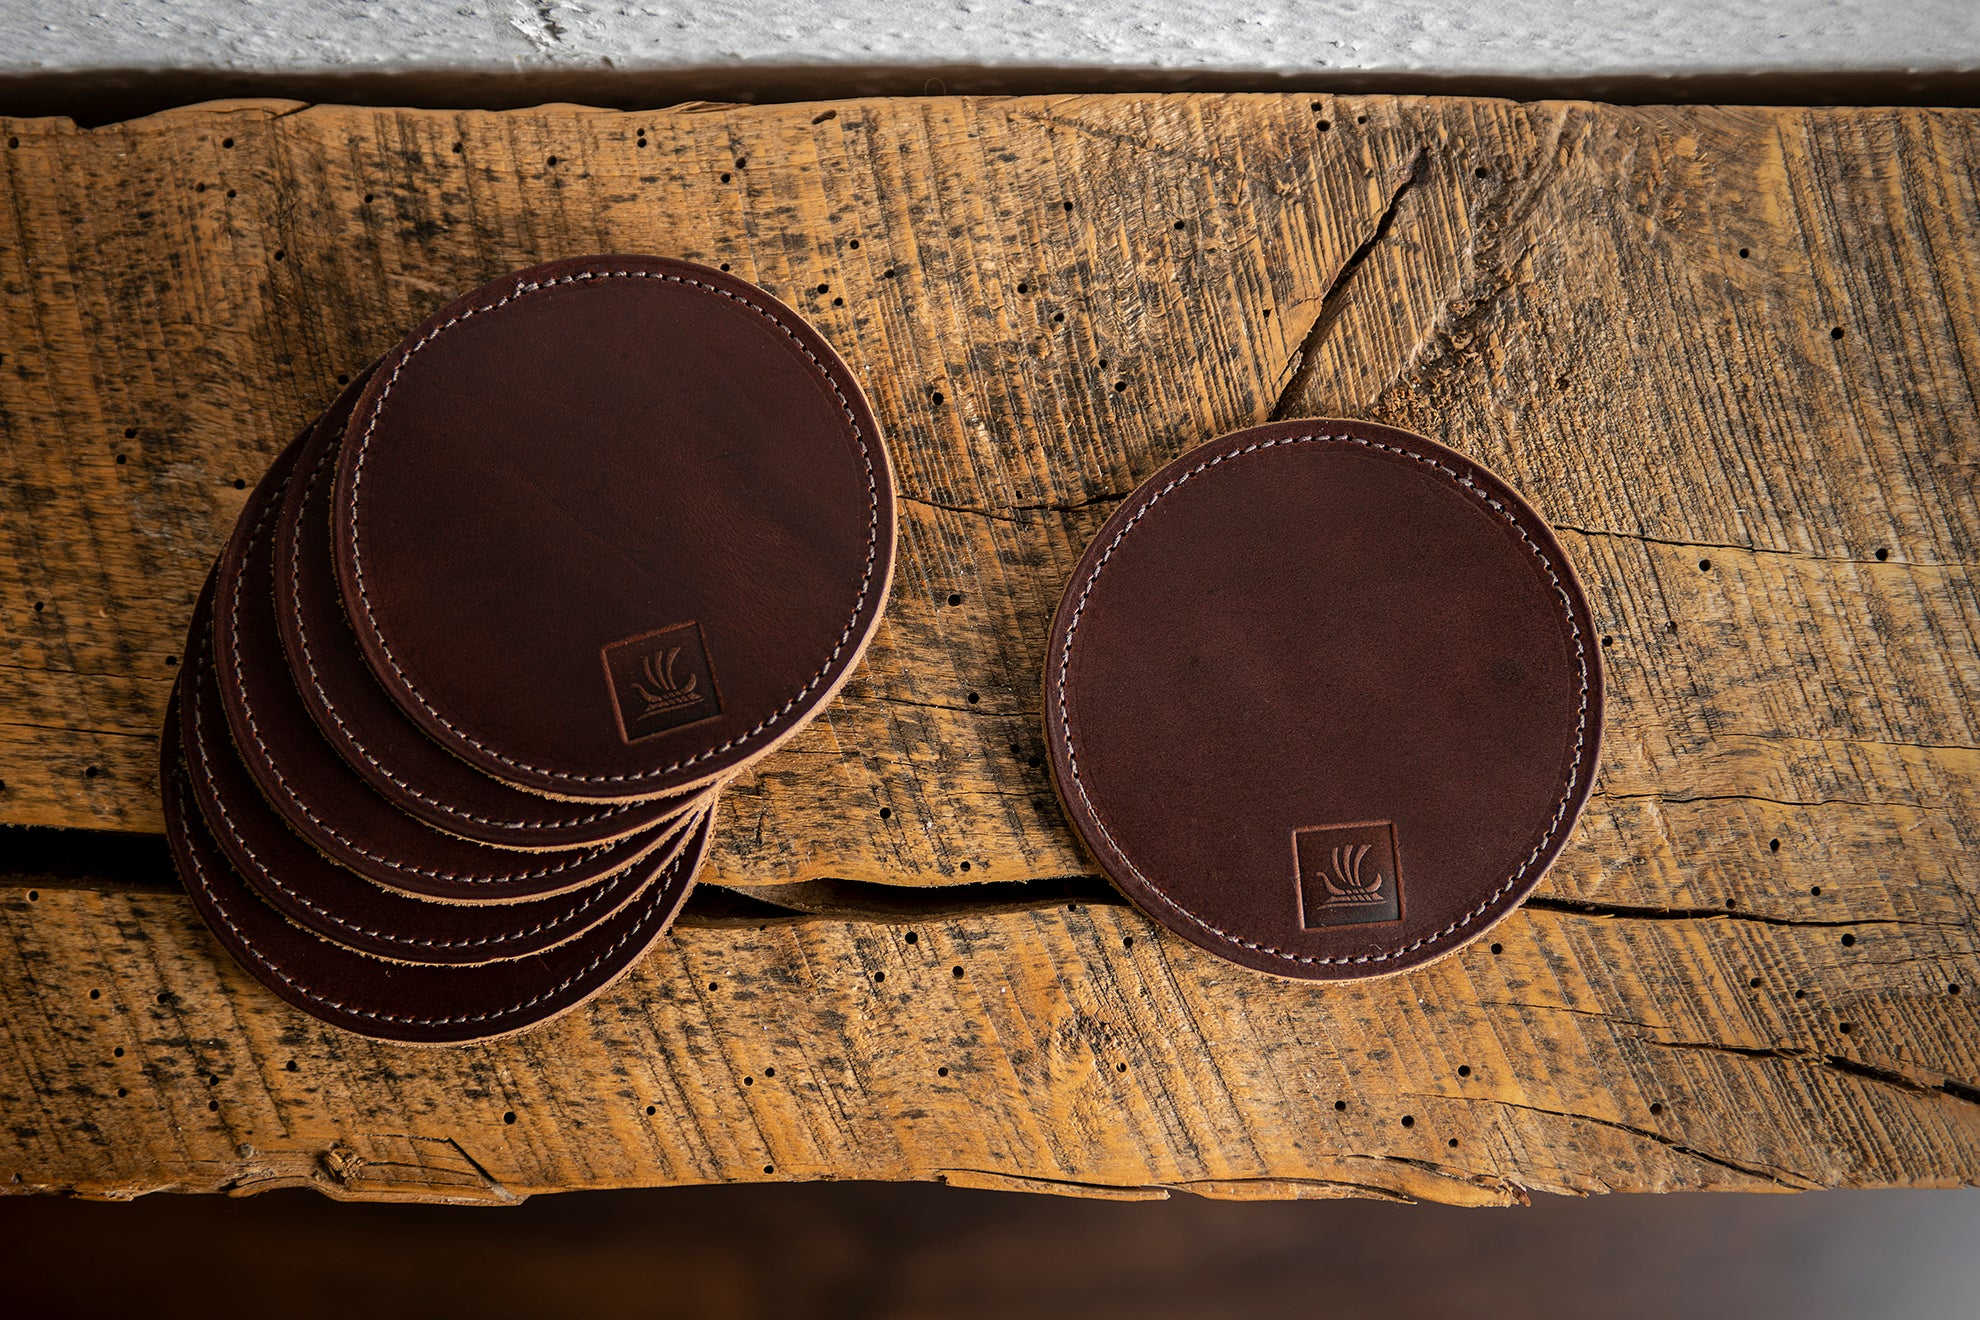 Coaster Sets - Copper Brown